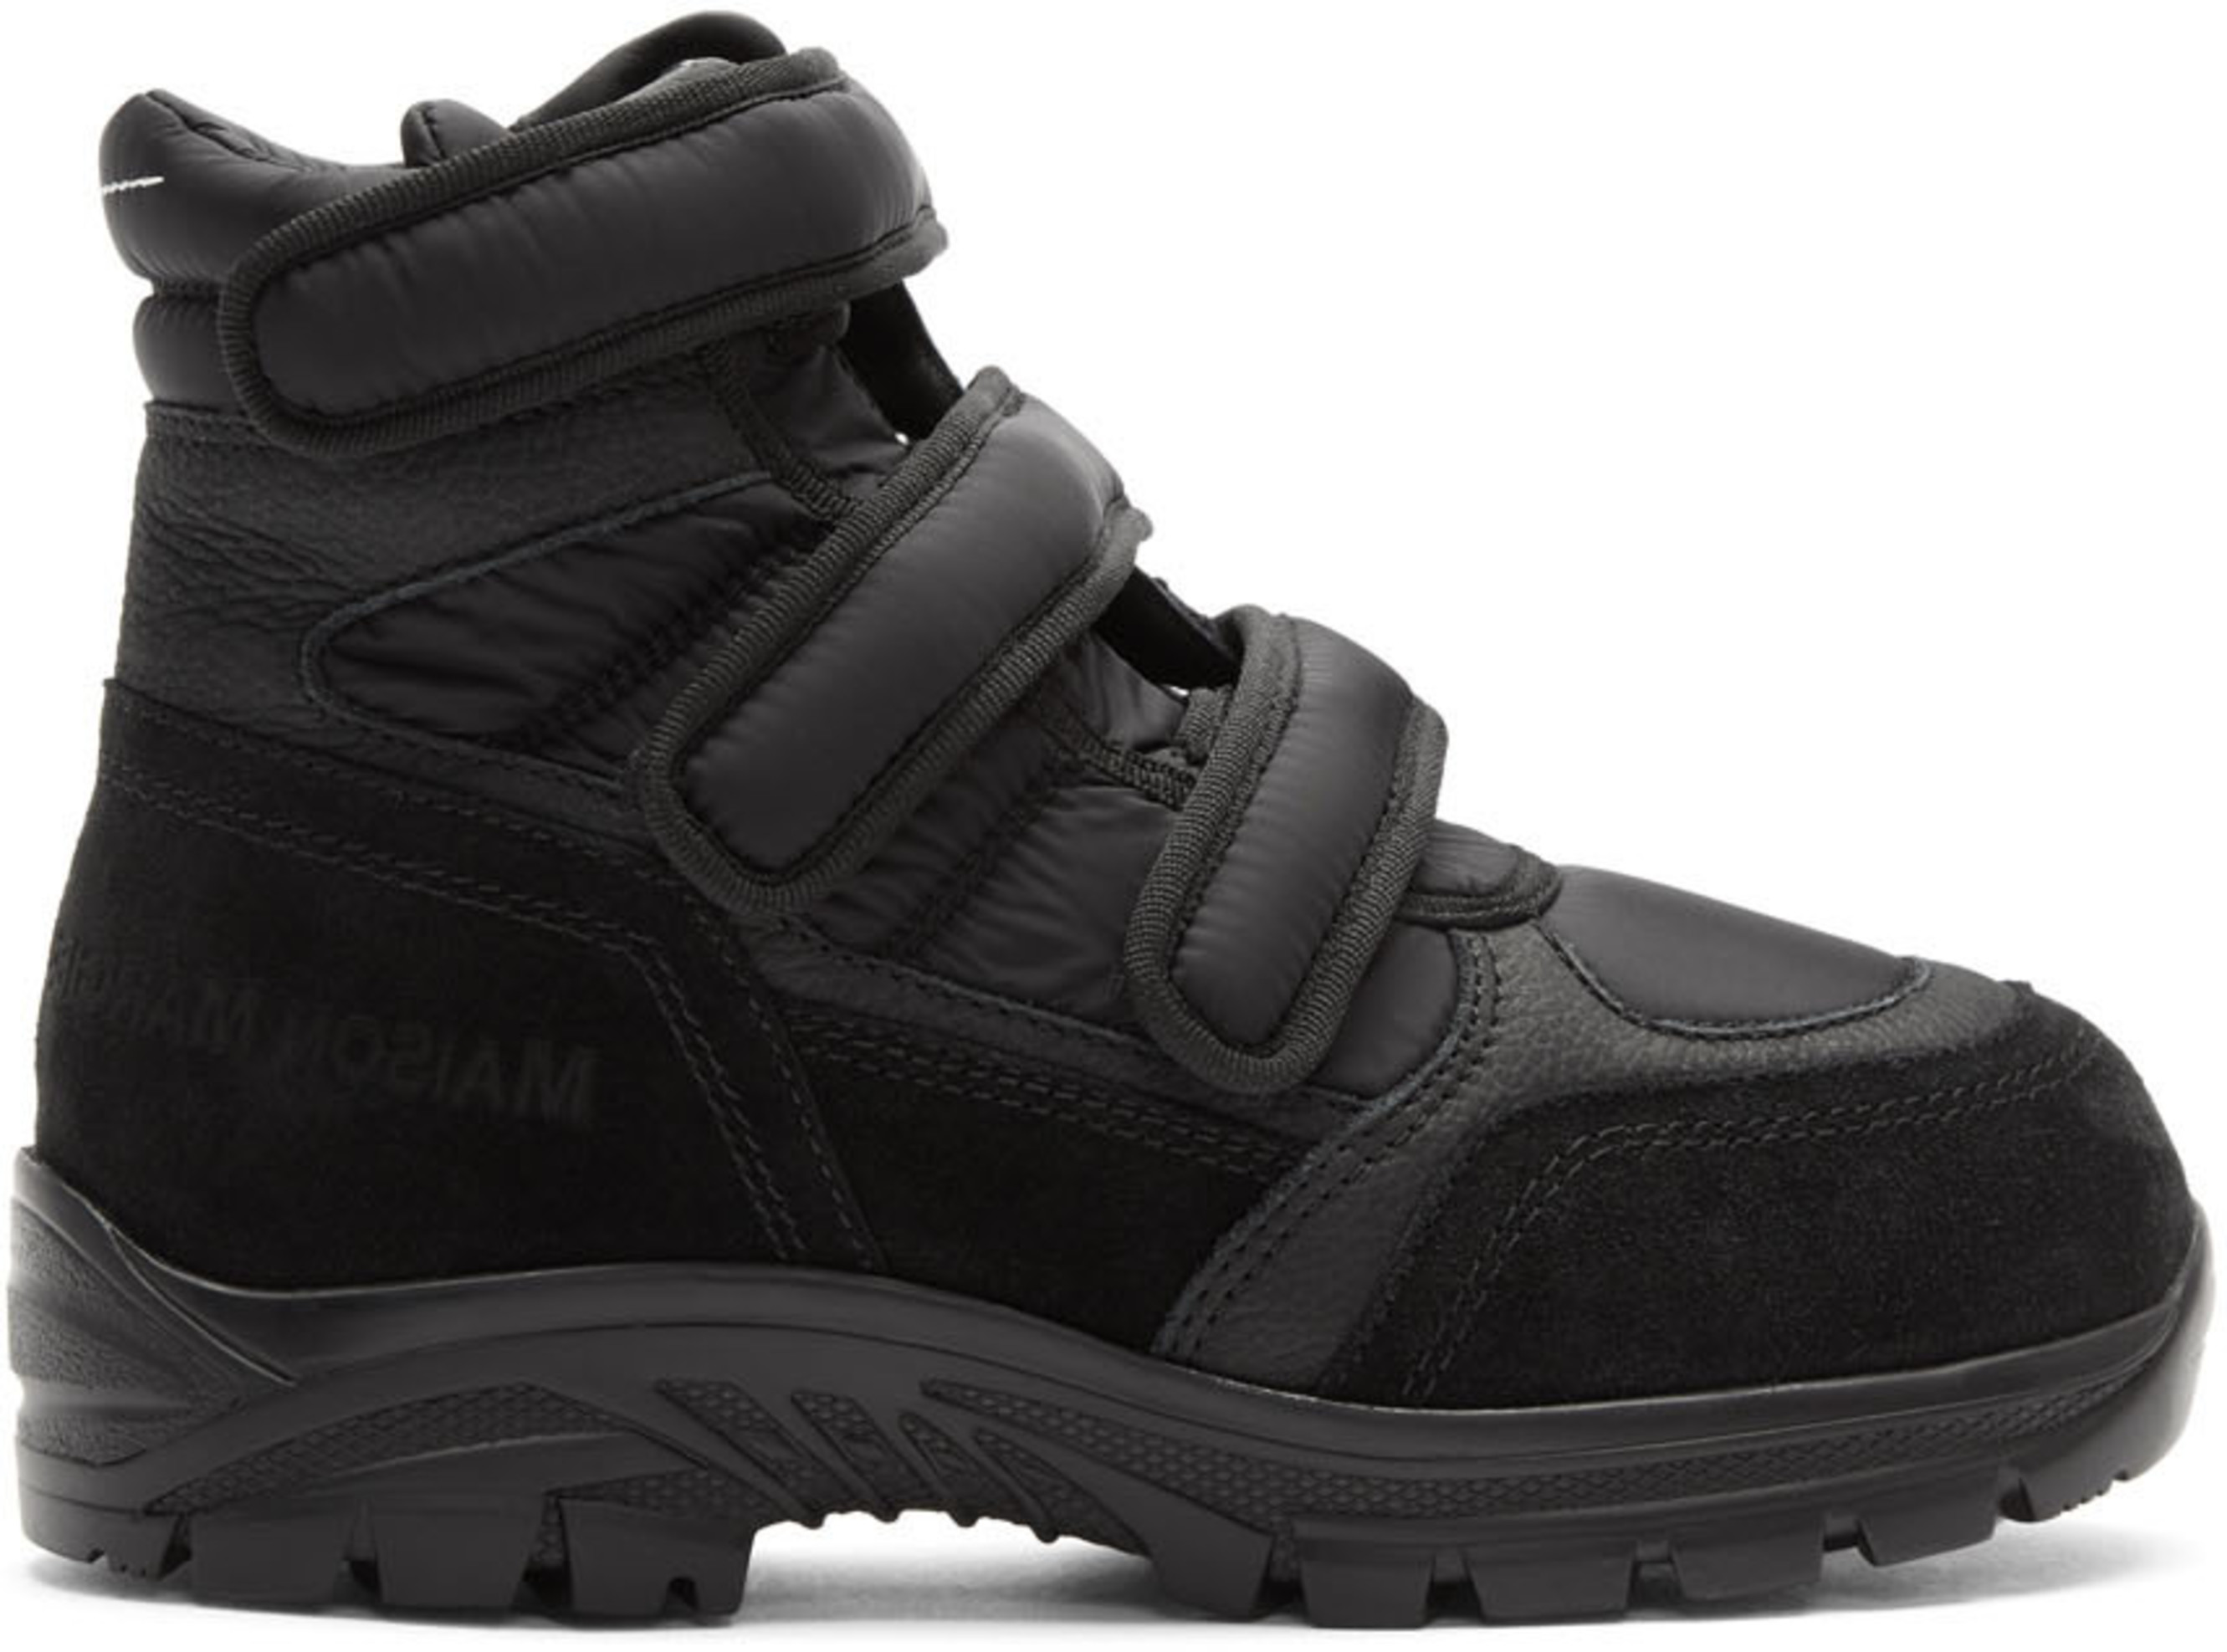 8709a179336 Black Velcro High Top Sneakers